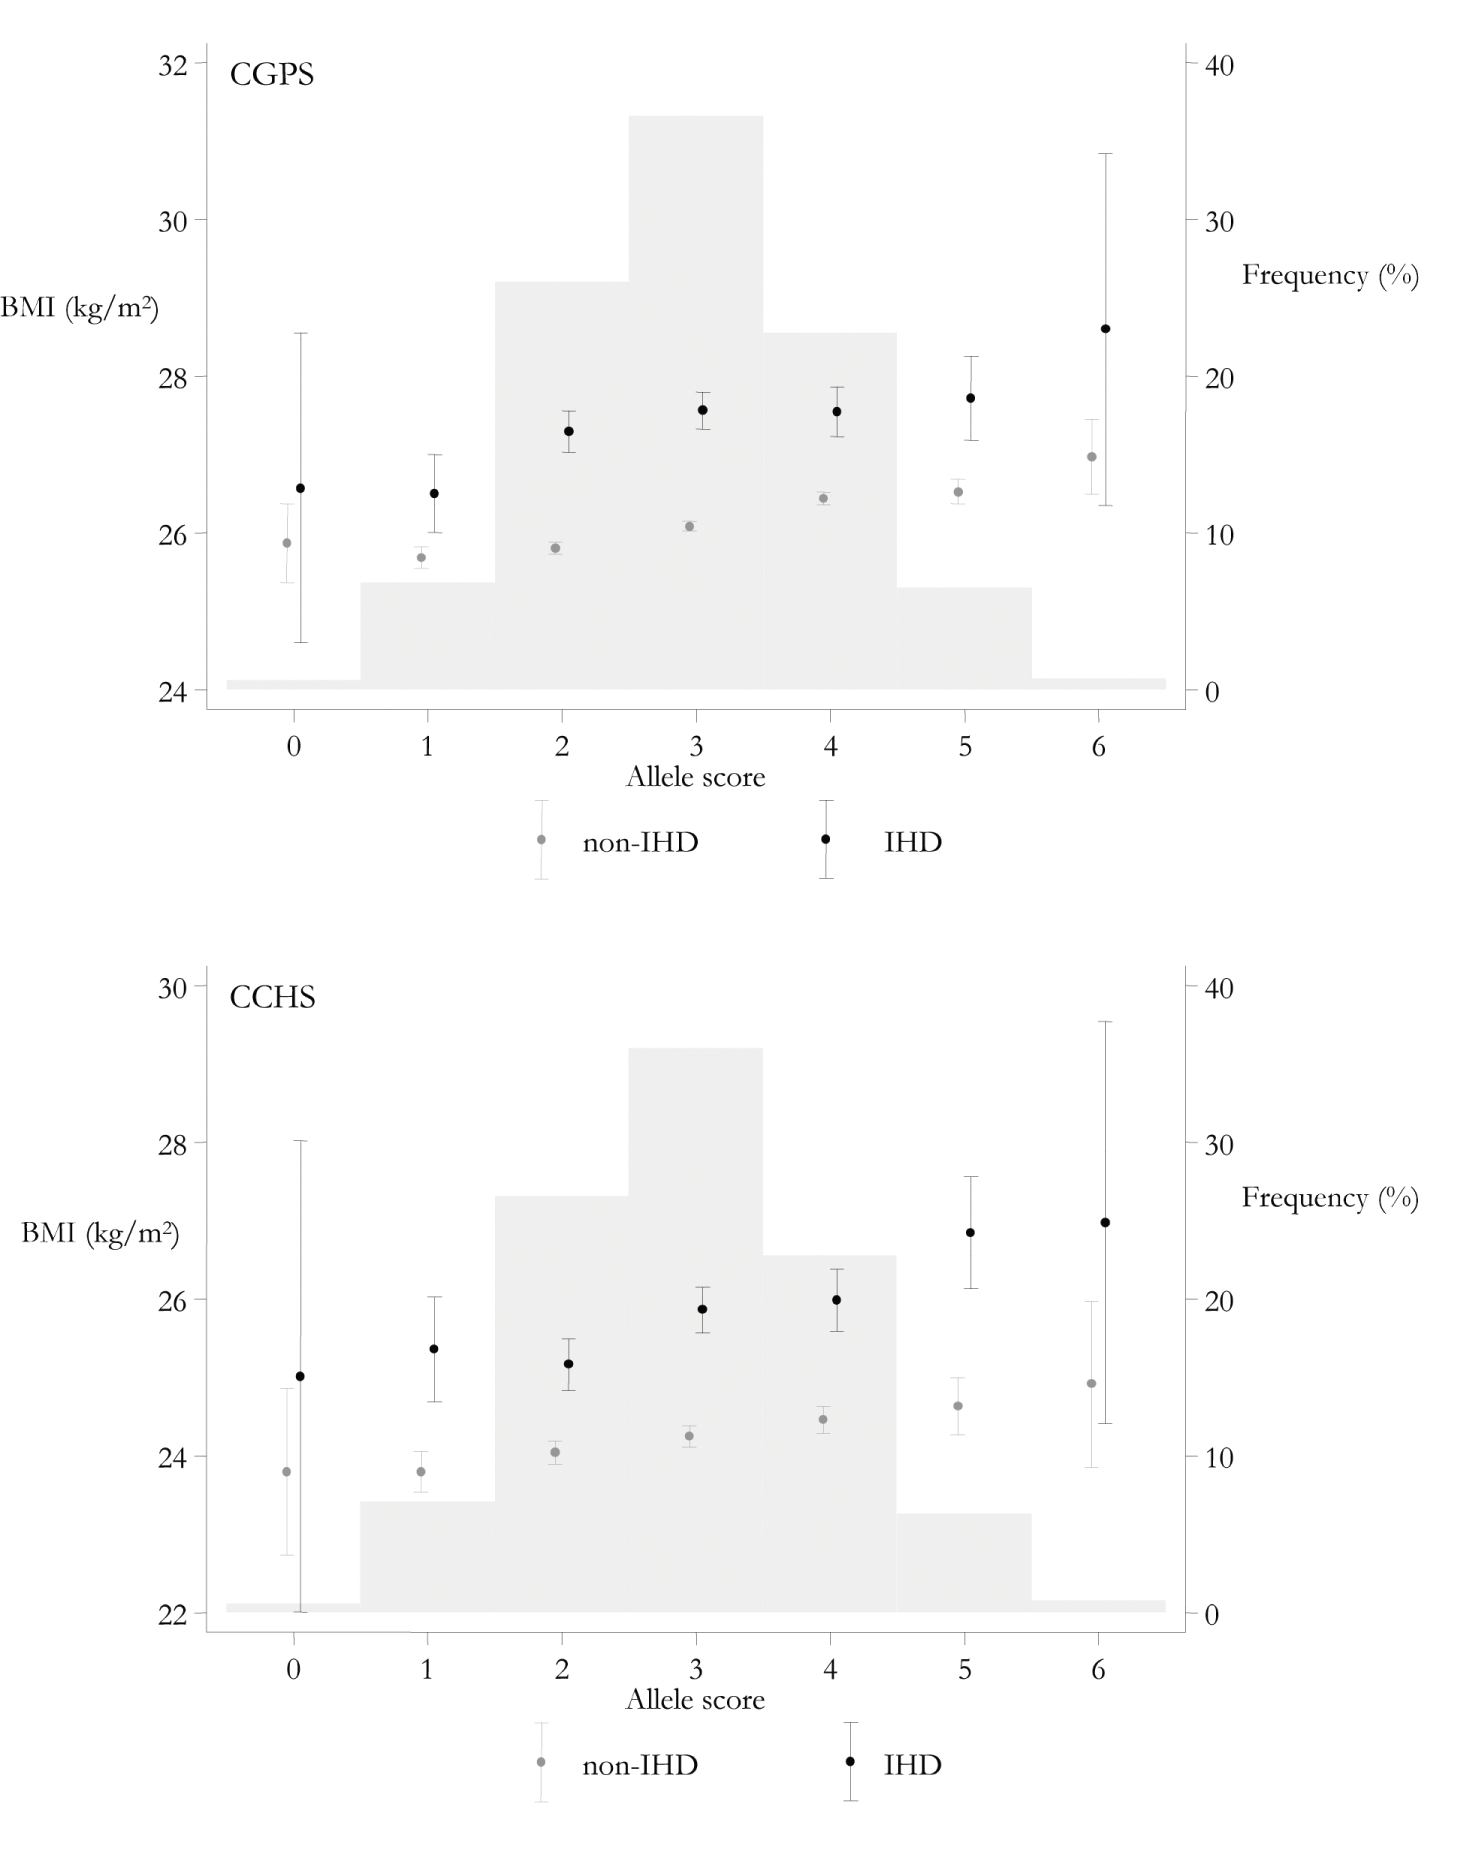 Mean BMI and 95% CIs by allele score and IHD status and distribution of allele score in the CGPS and CCHS.